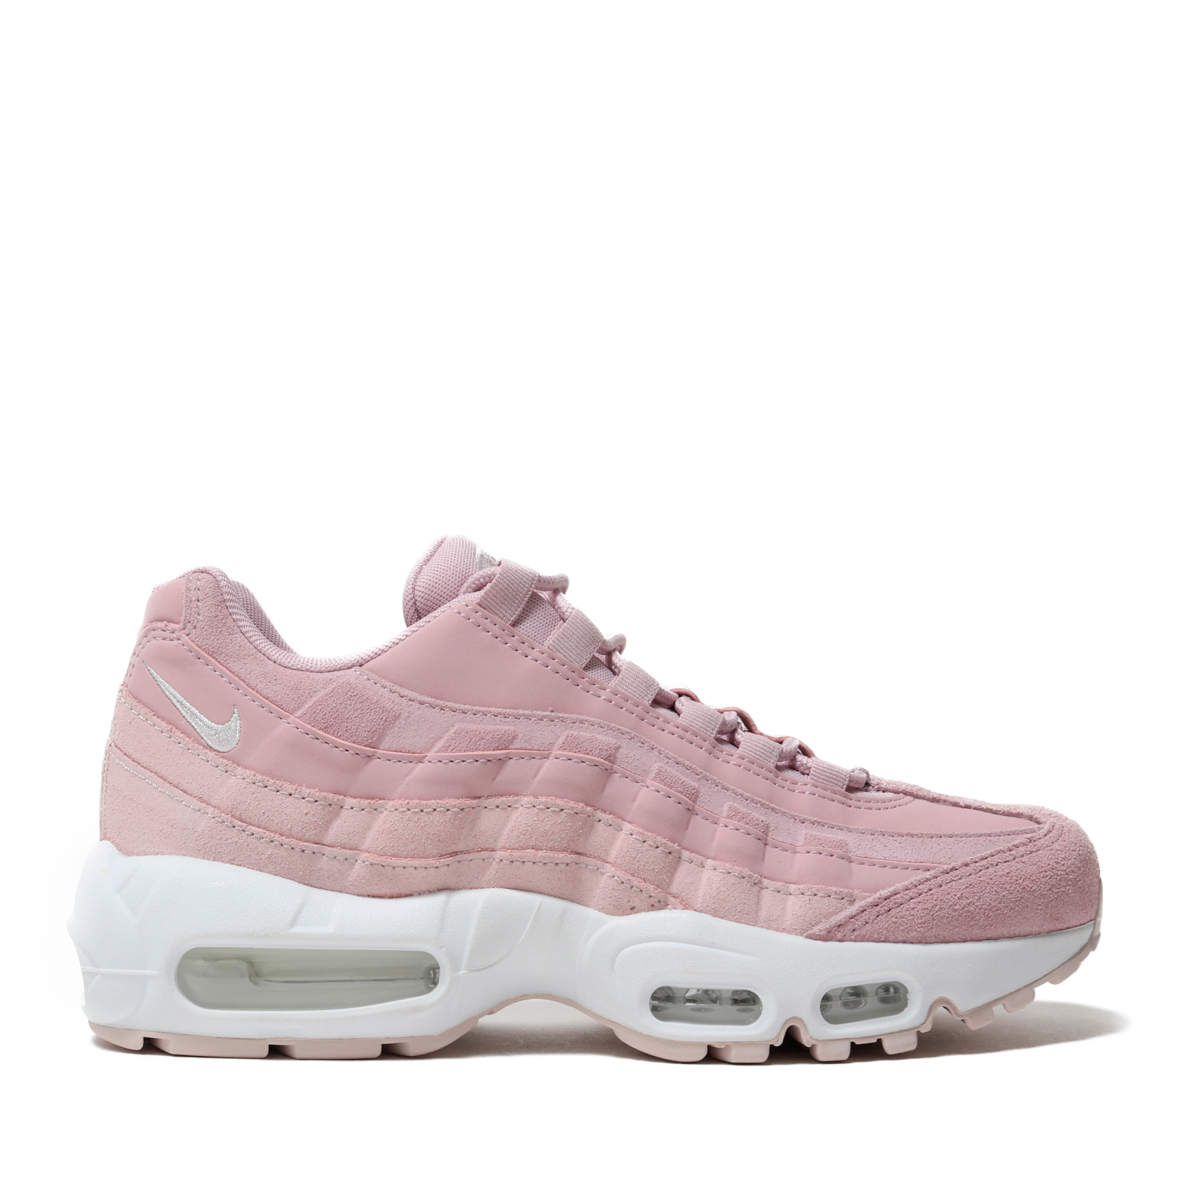 54bce463a7 Kinetics: NIKE WMNS AIR MAX 95 PRM (PLUM CHALK/BARELY ROSE-SUMMIT ...